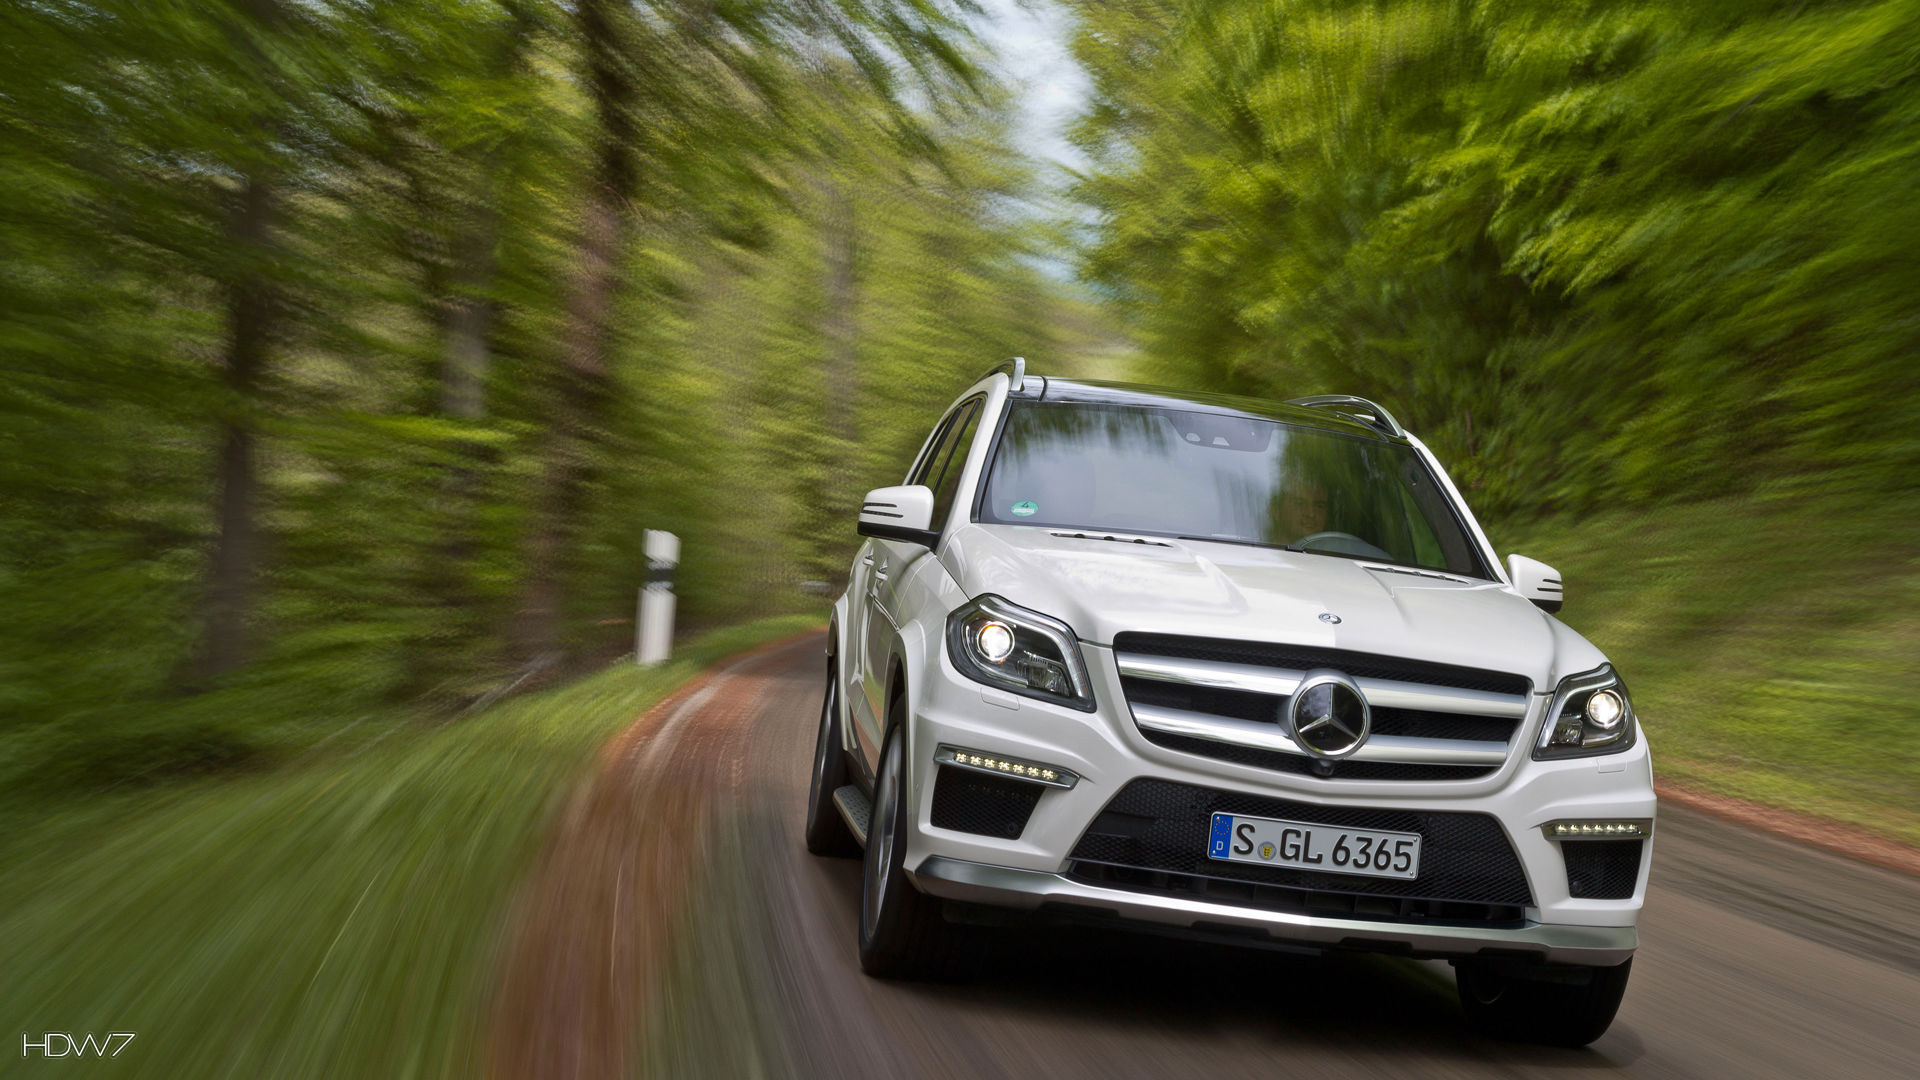 mercedes benz gl63 amg 2012 car hd wallpaper